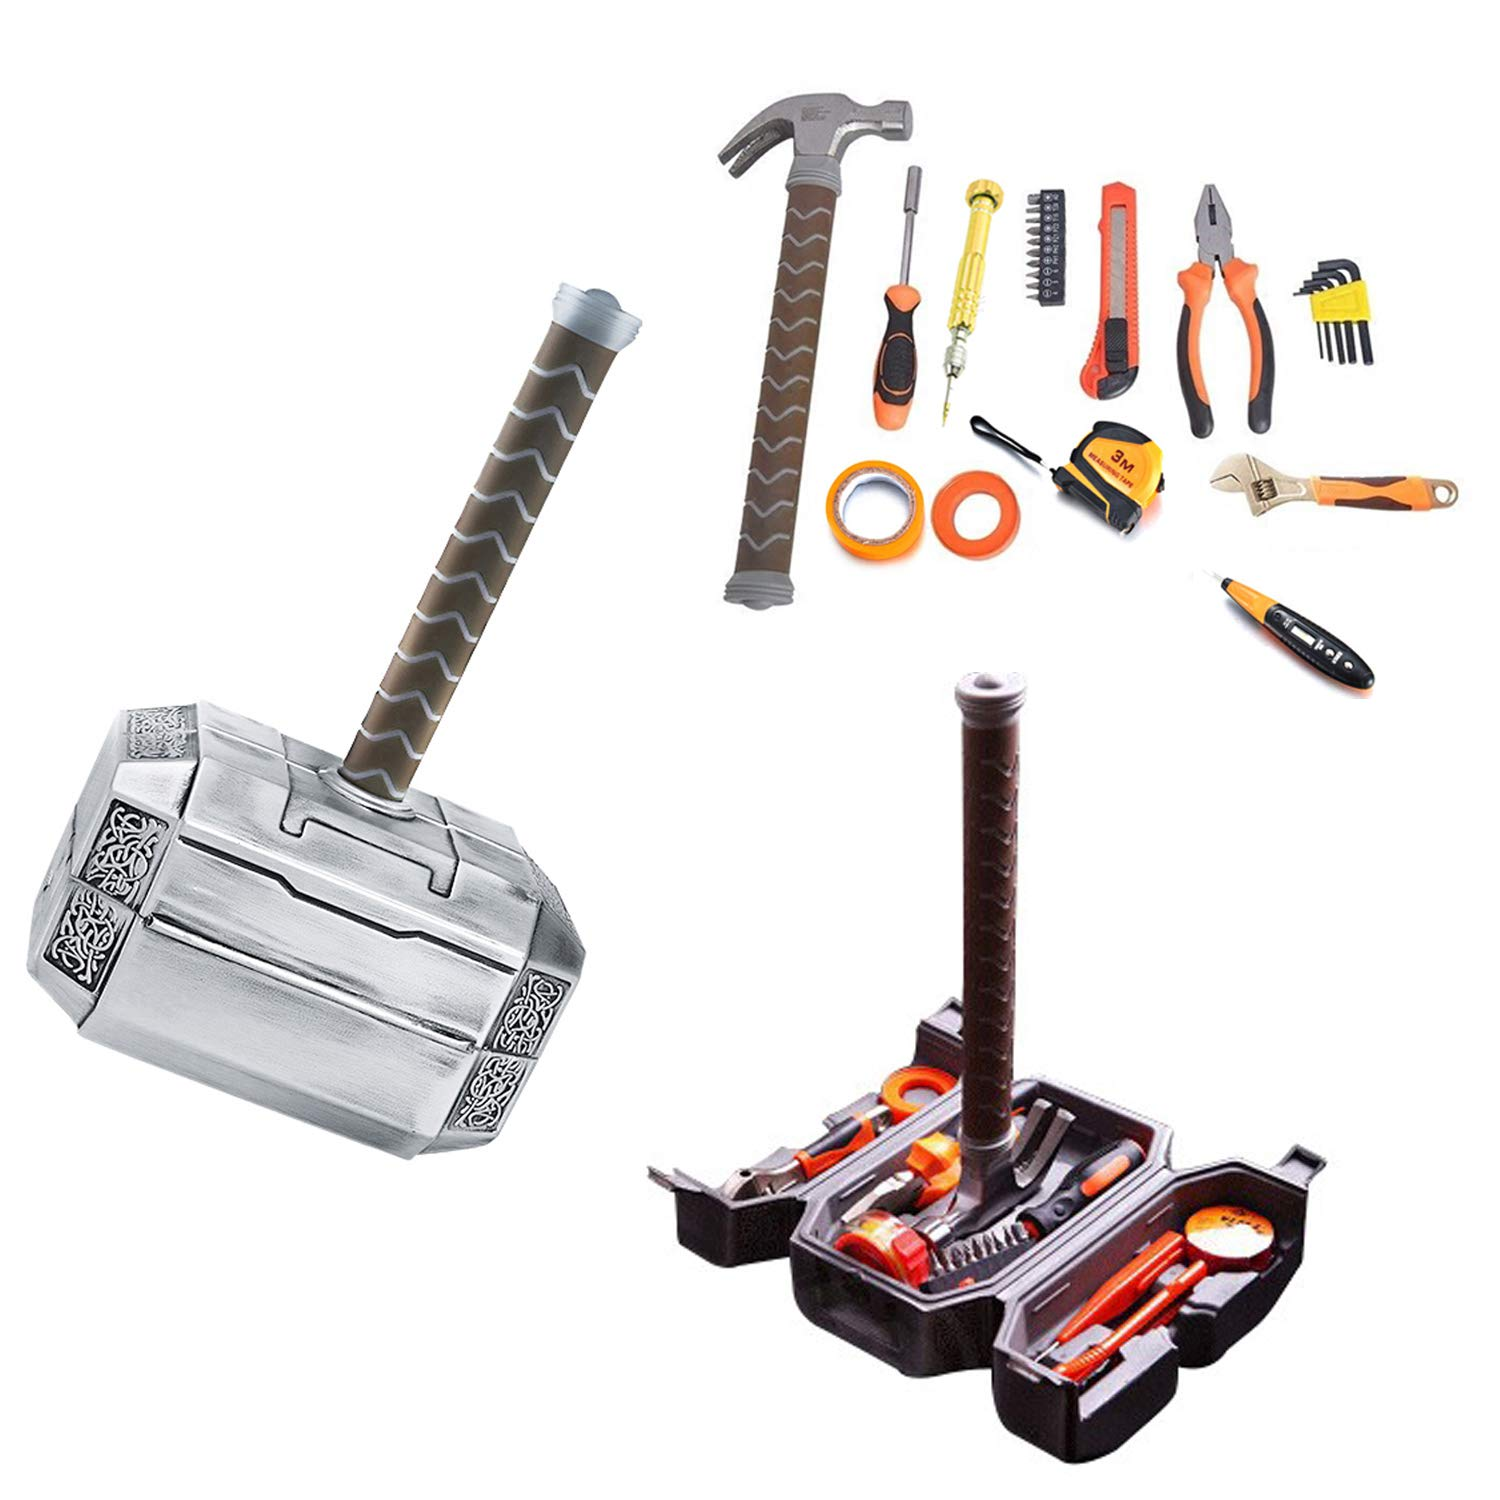 Thor Hammer Tool Set Thor Battle Hammer Tool Set,Durable, Long Lasting Chrome Finish Tools With Thor Hammer Case